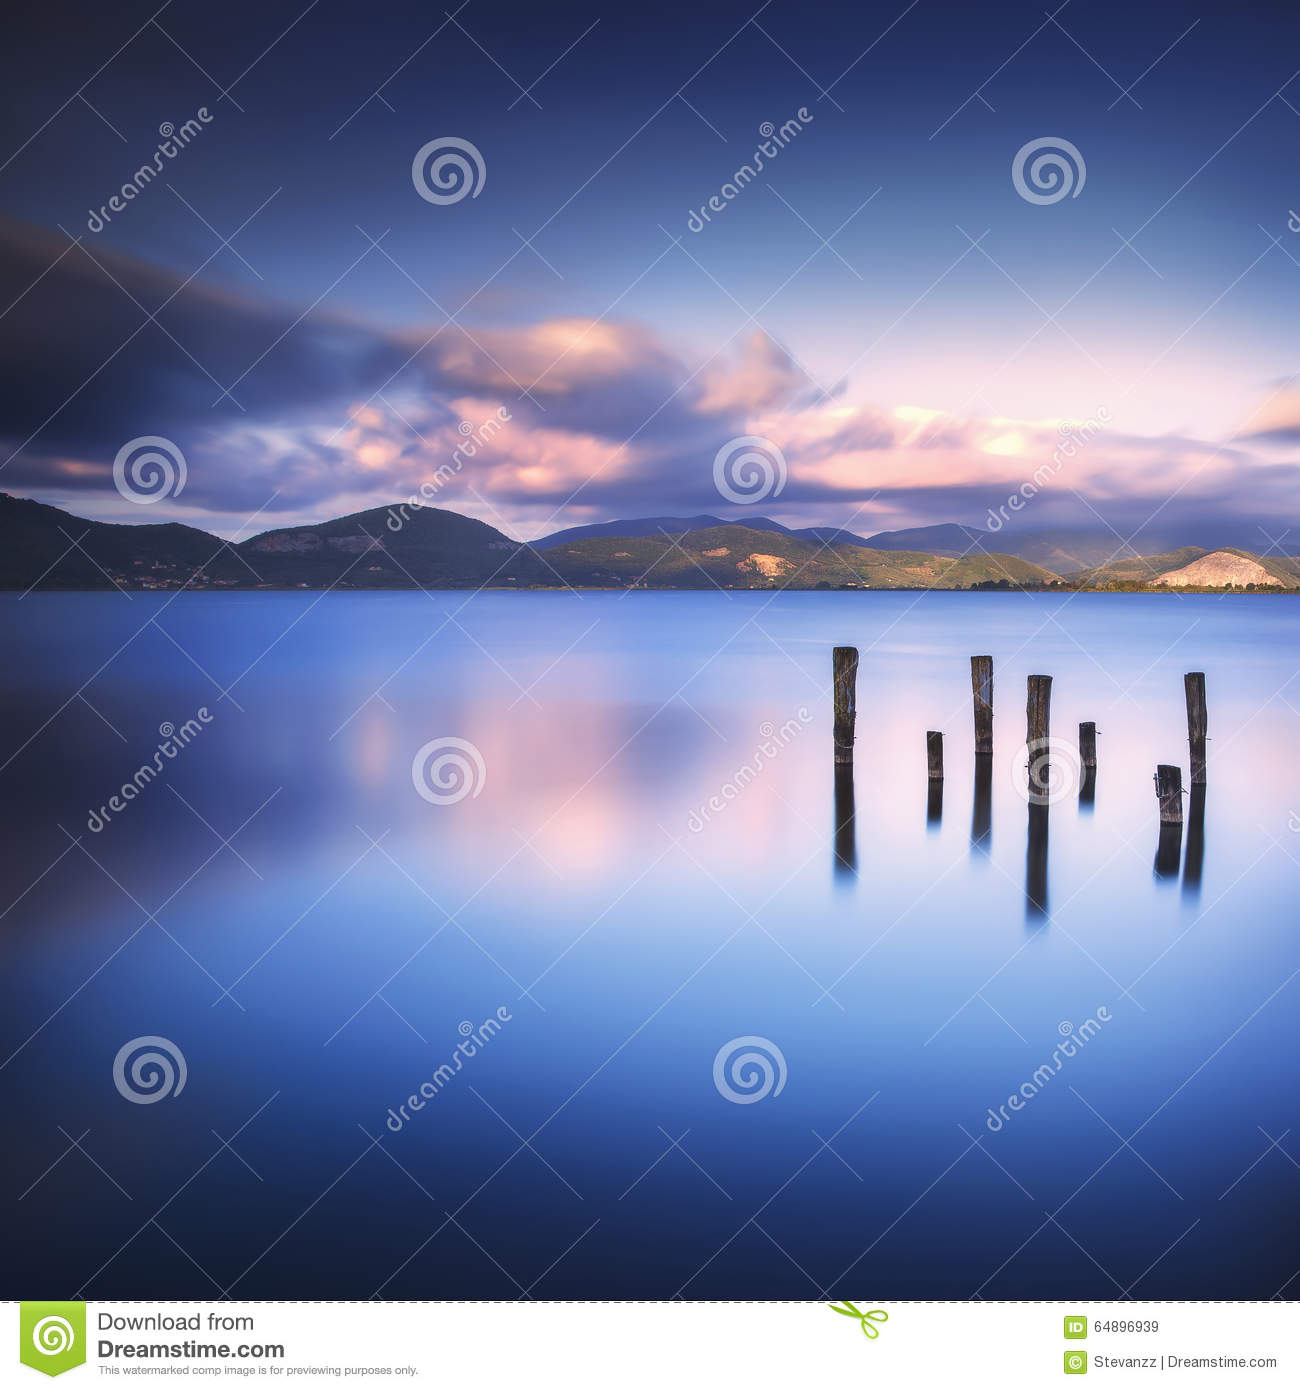 Download Wooden Pier Or Jetty Remains On A Blue Lake Sunset And Sky Refle Stock Image - Image of holiday, scene: 64896939